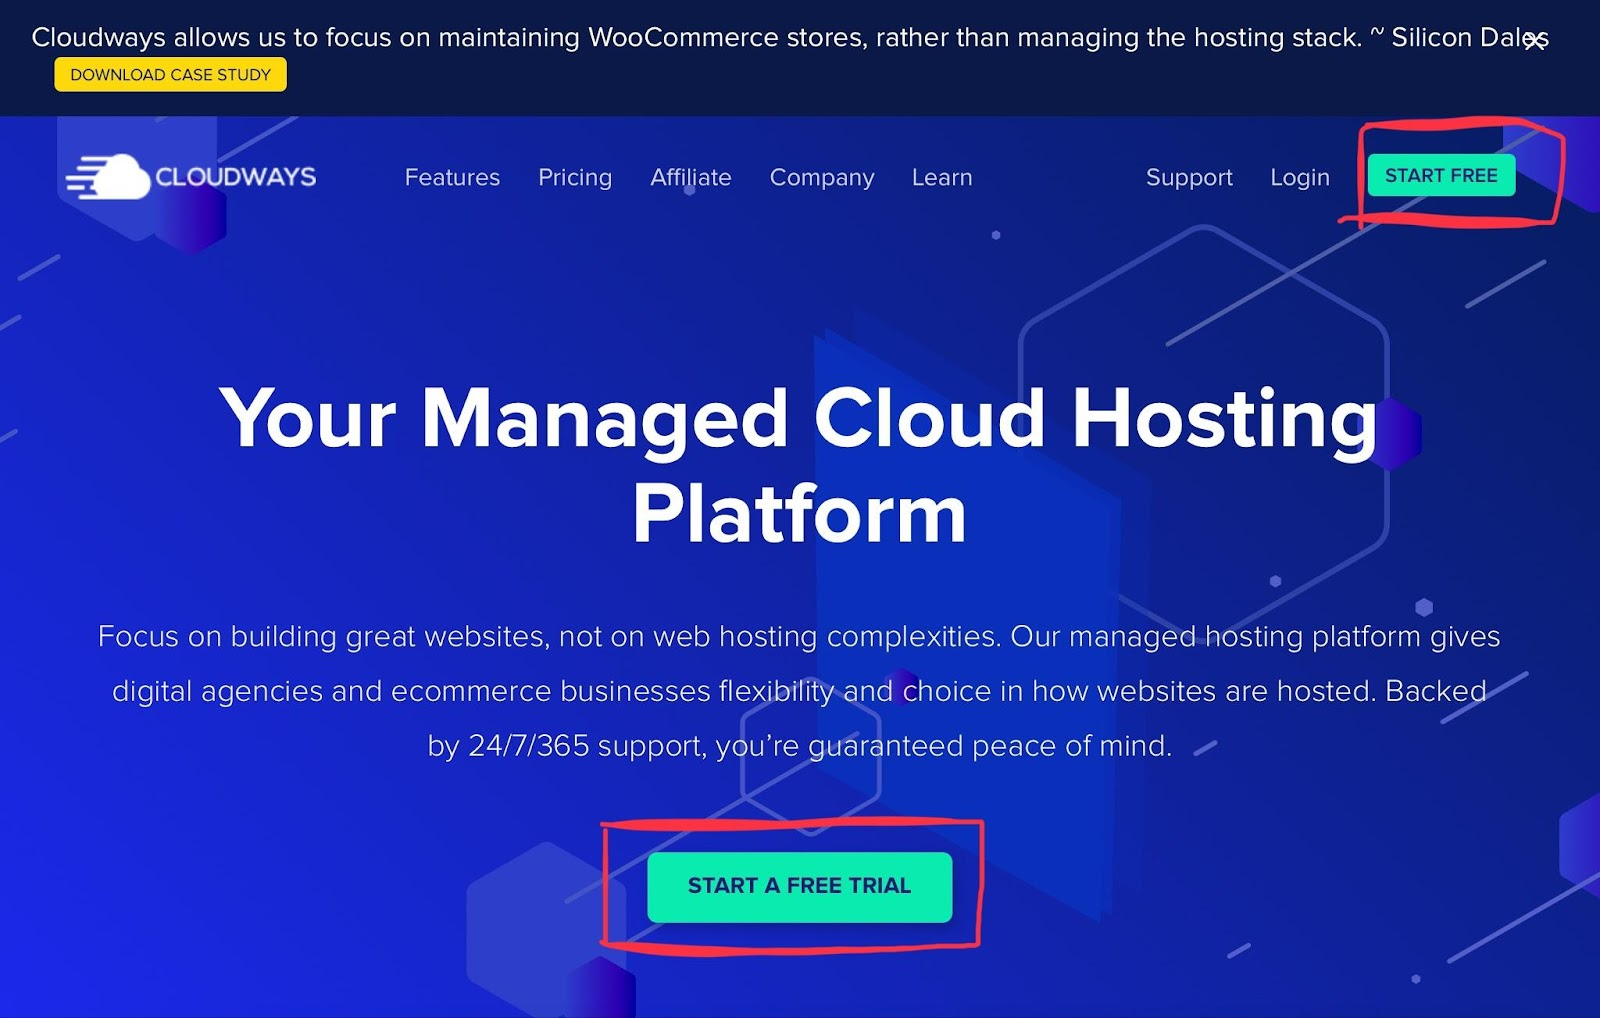 start a free trial of cloudways - cloudways review